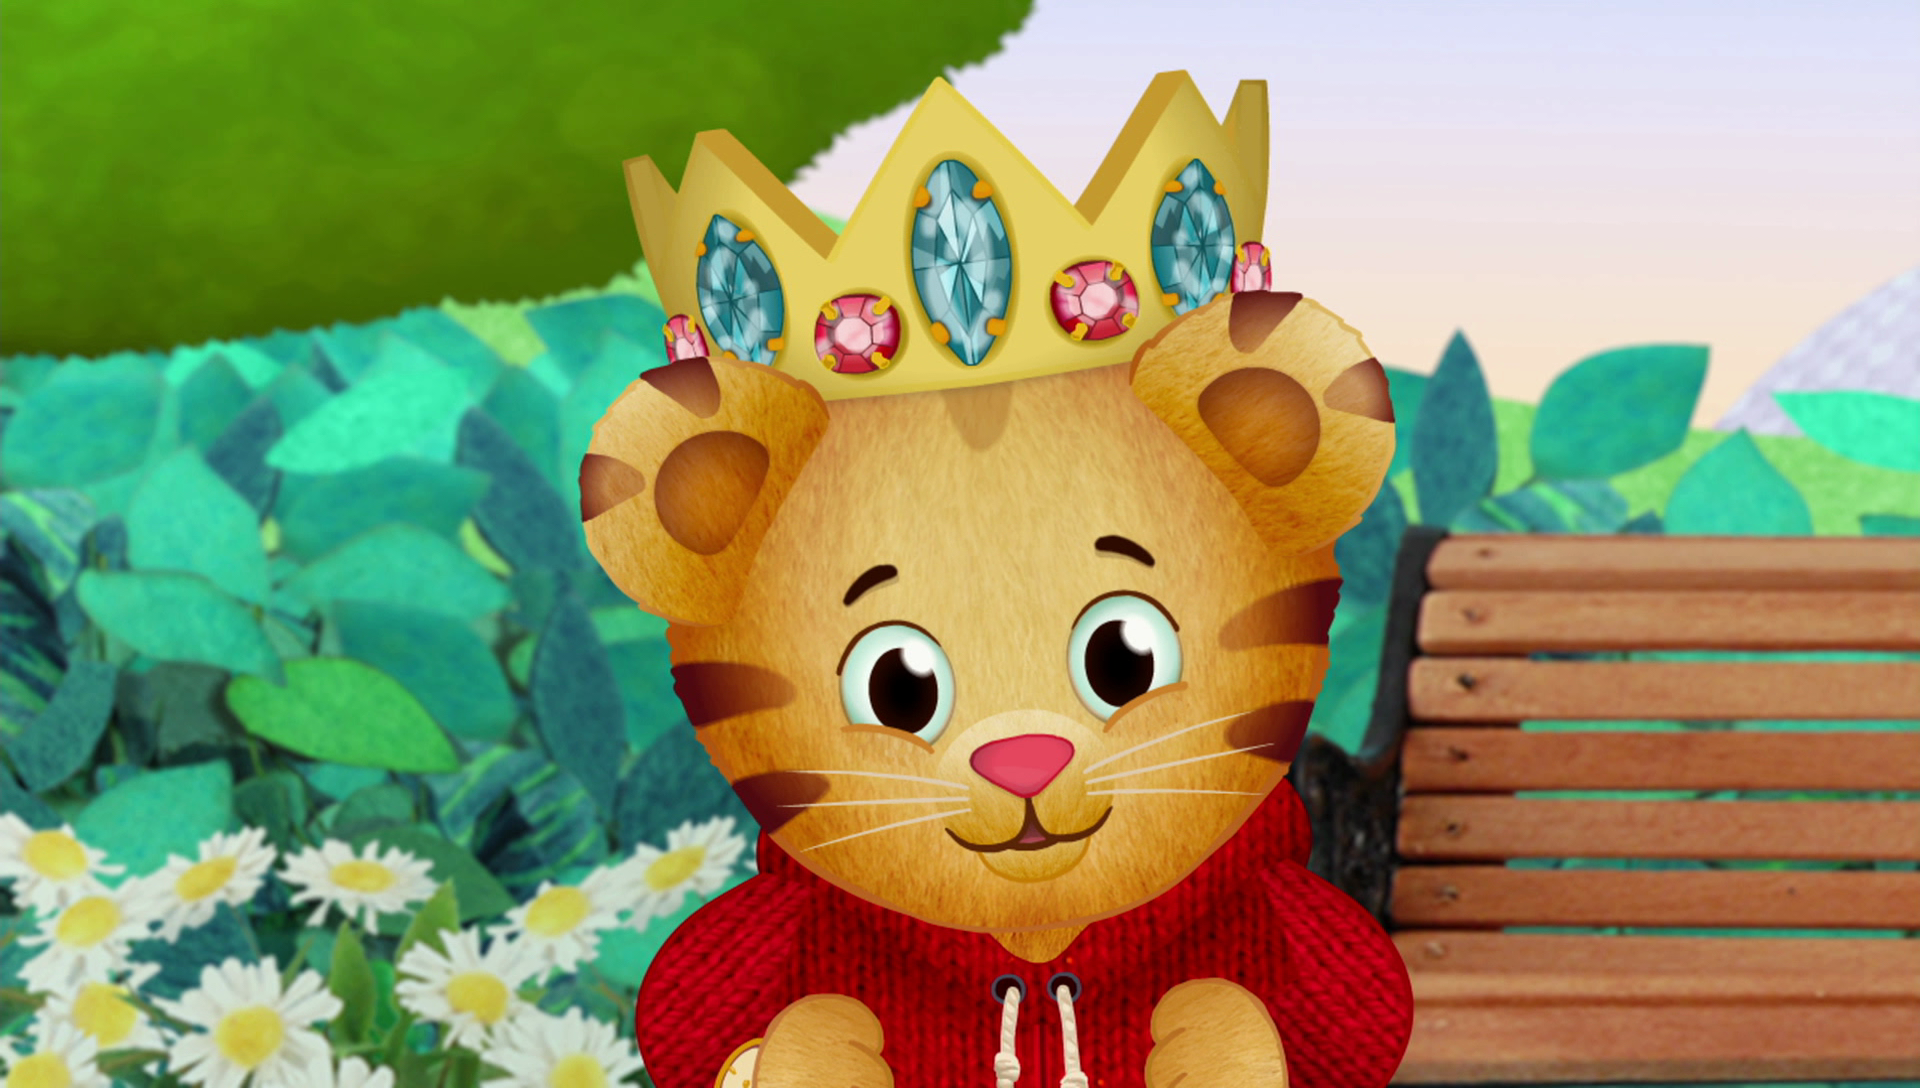 Pbs Kids Daniel Tiger S Neighborhood